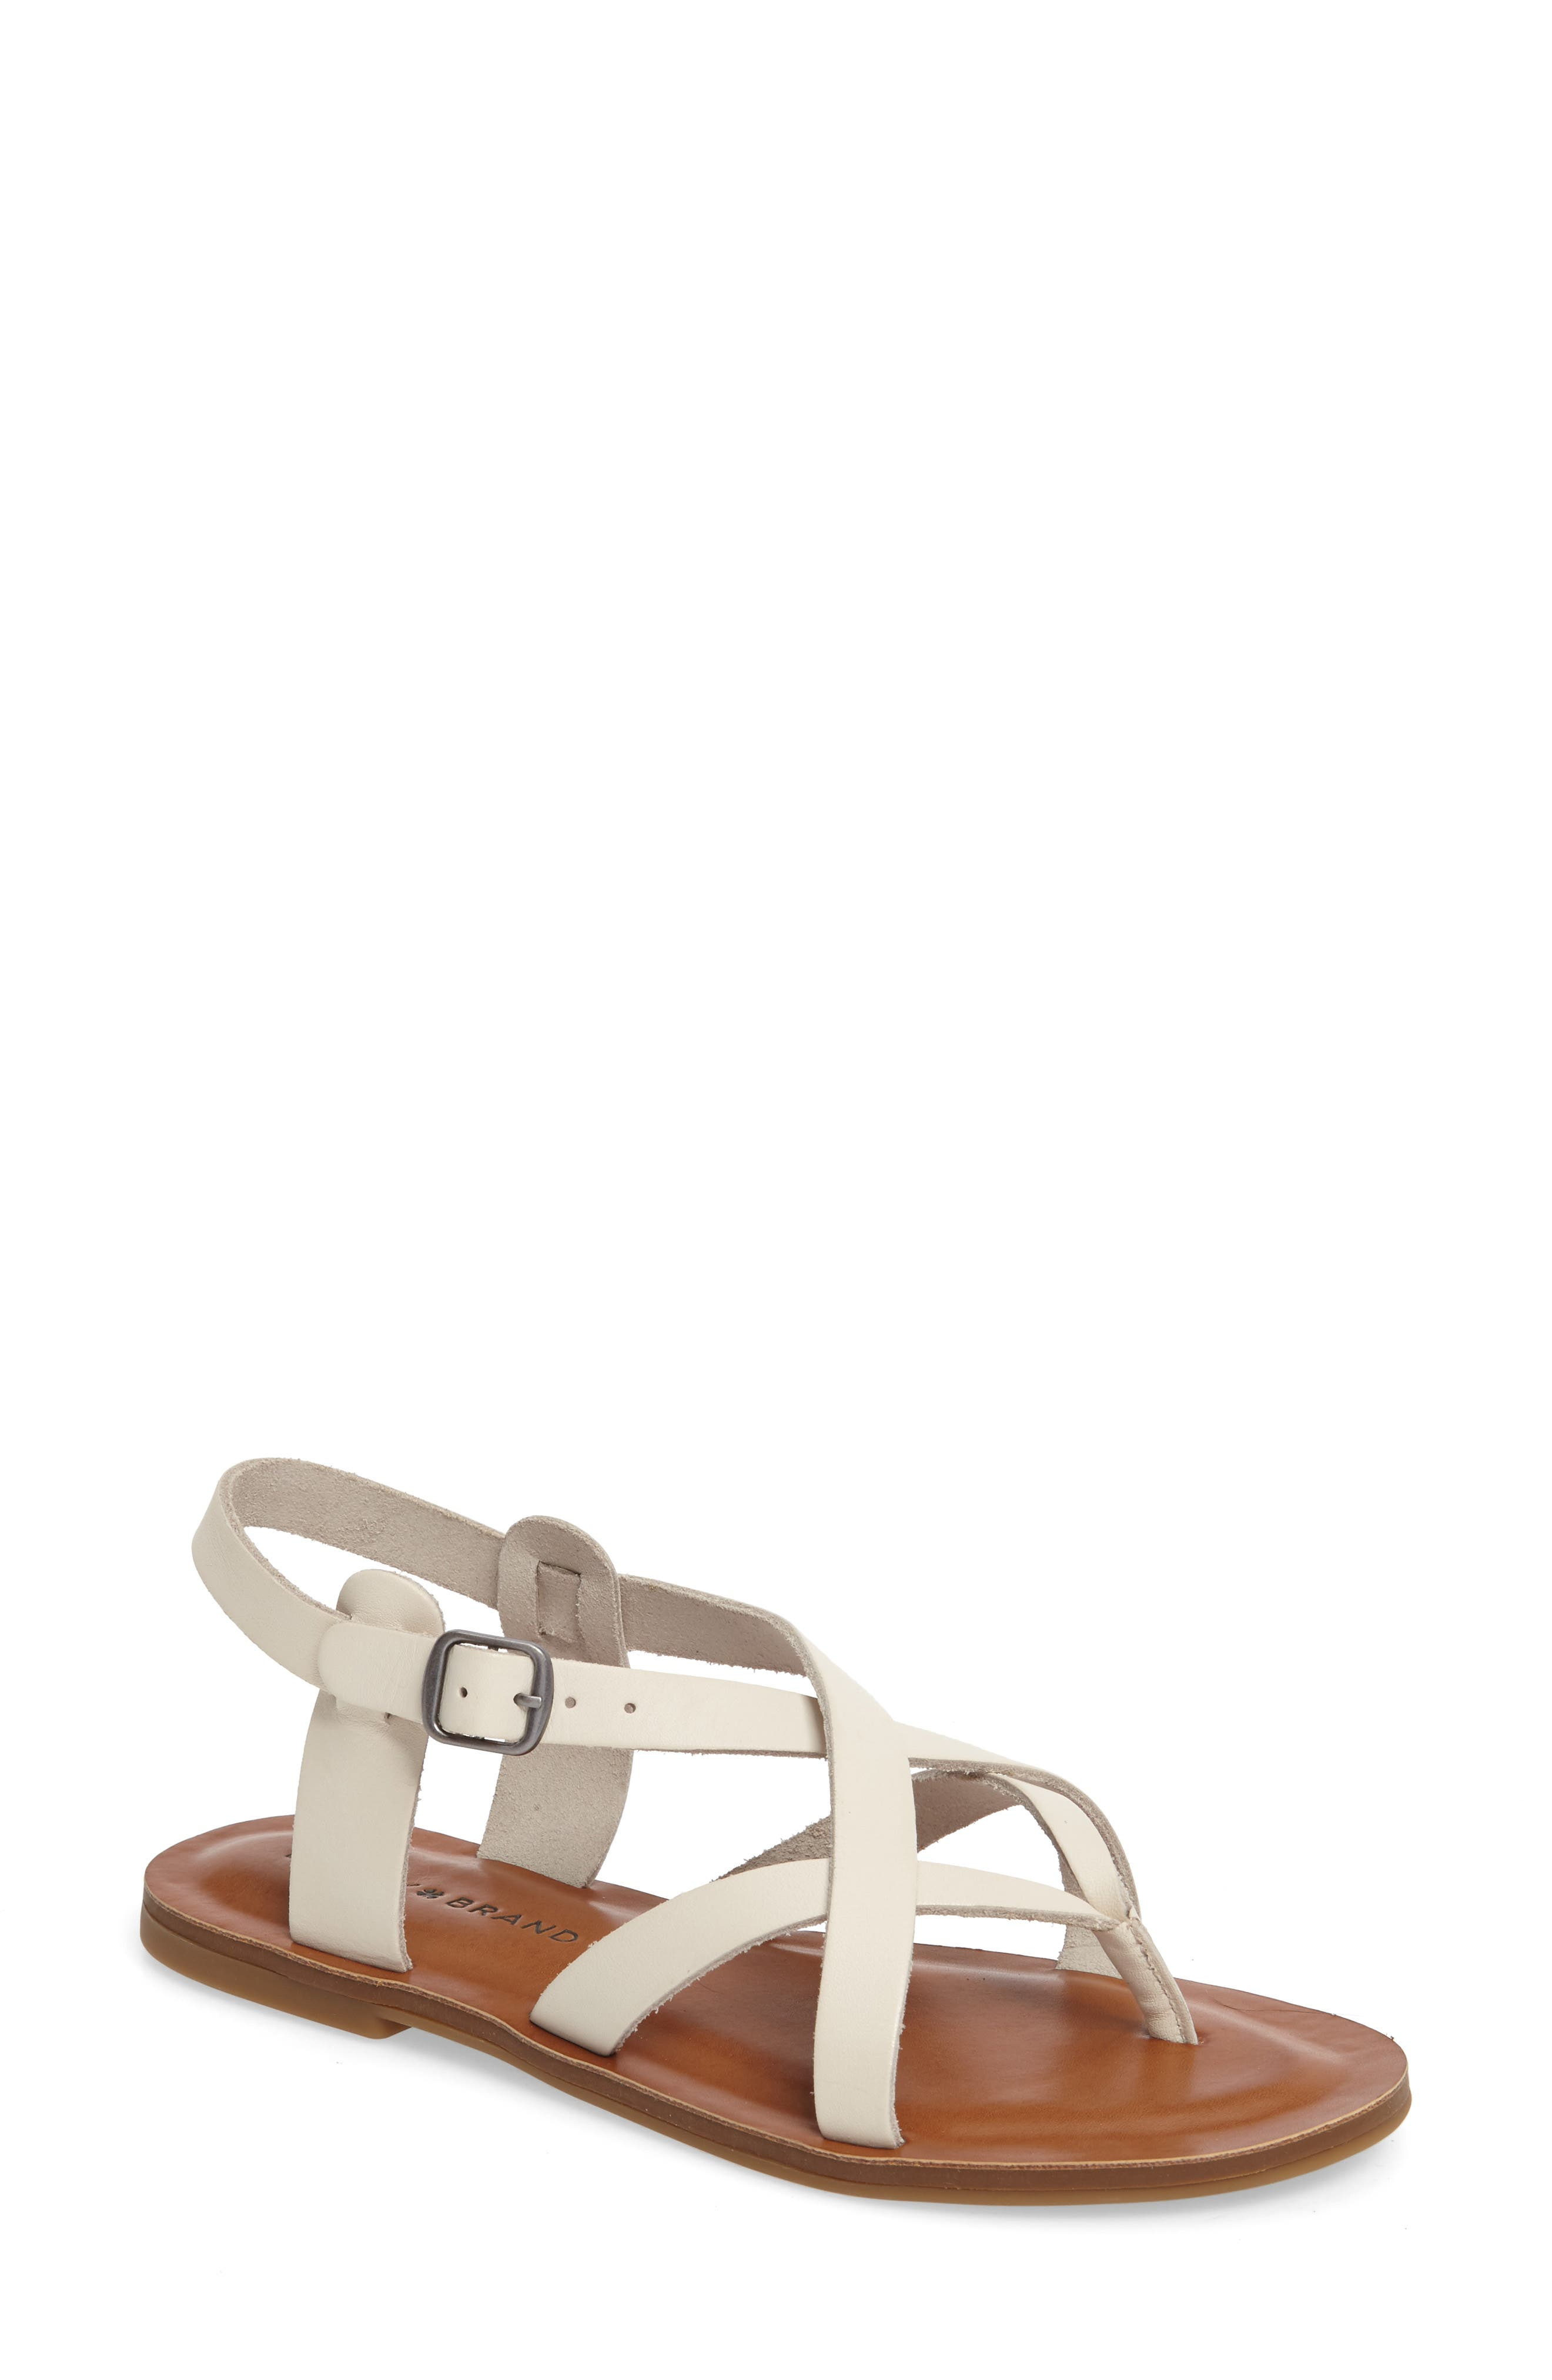 Adinis Flat Sandal,                         Main,                         color, Sand Shell Leather